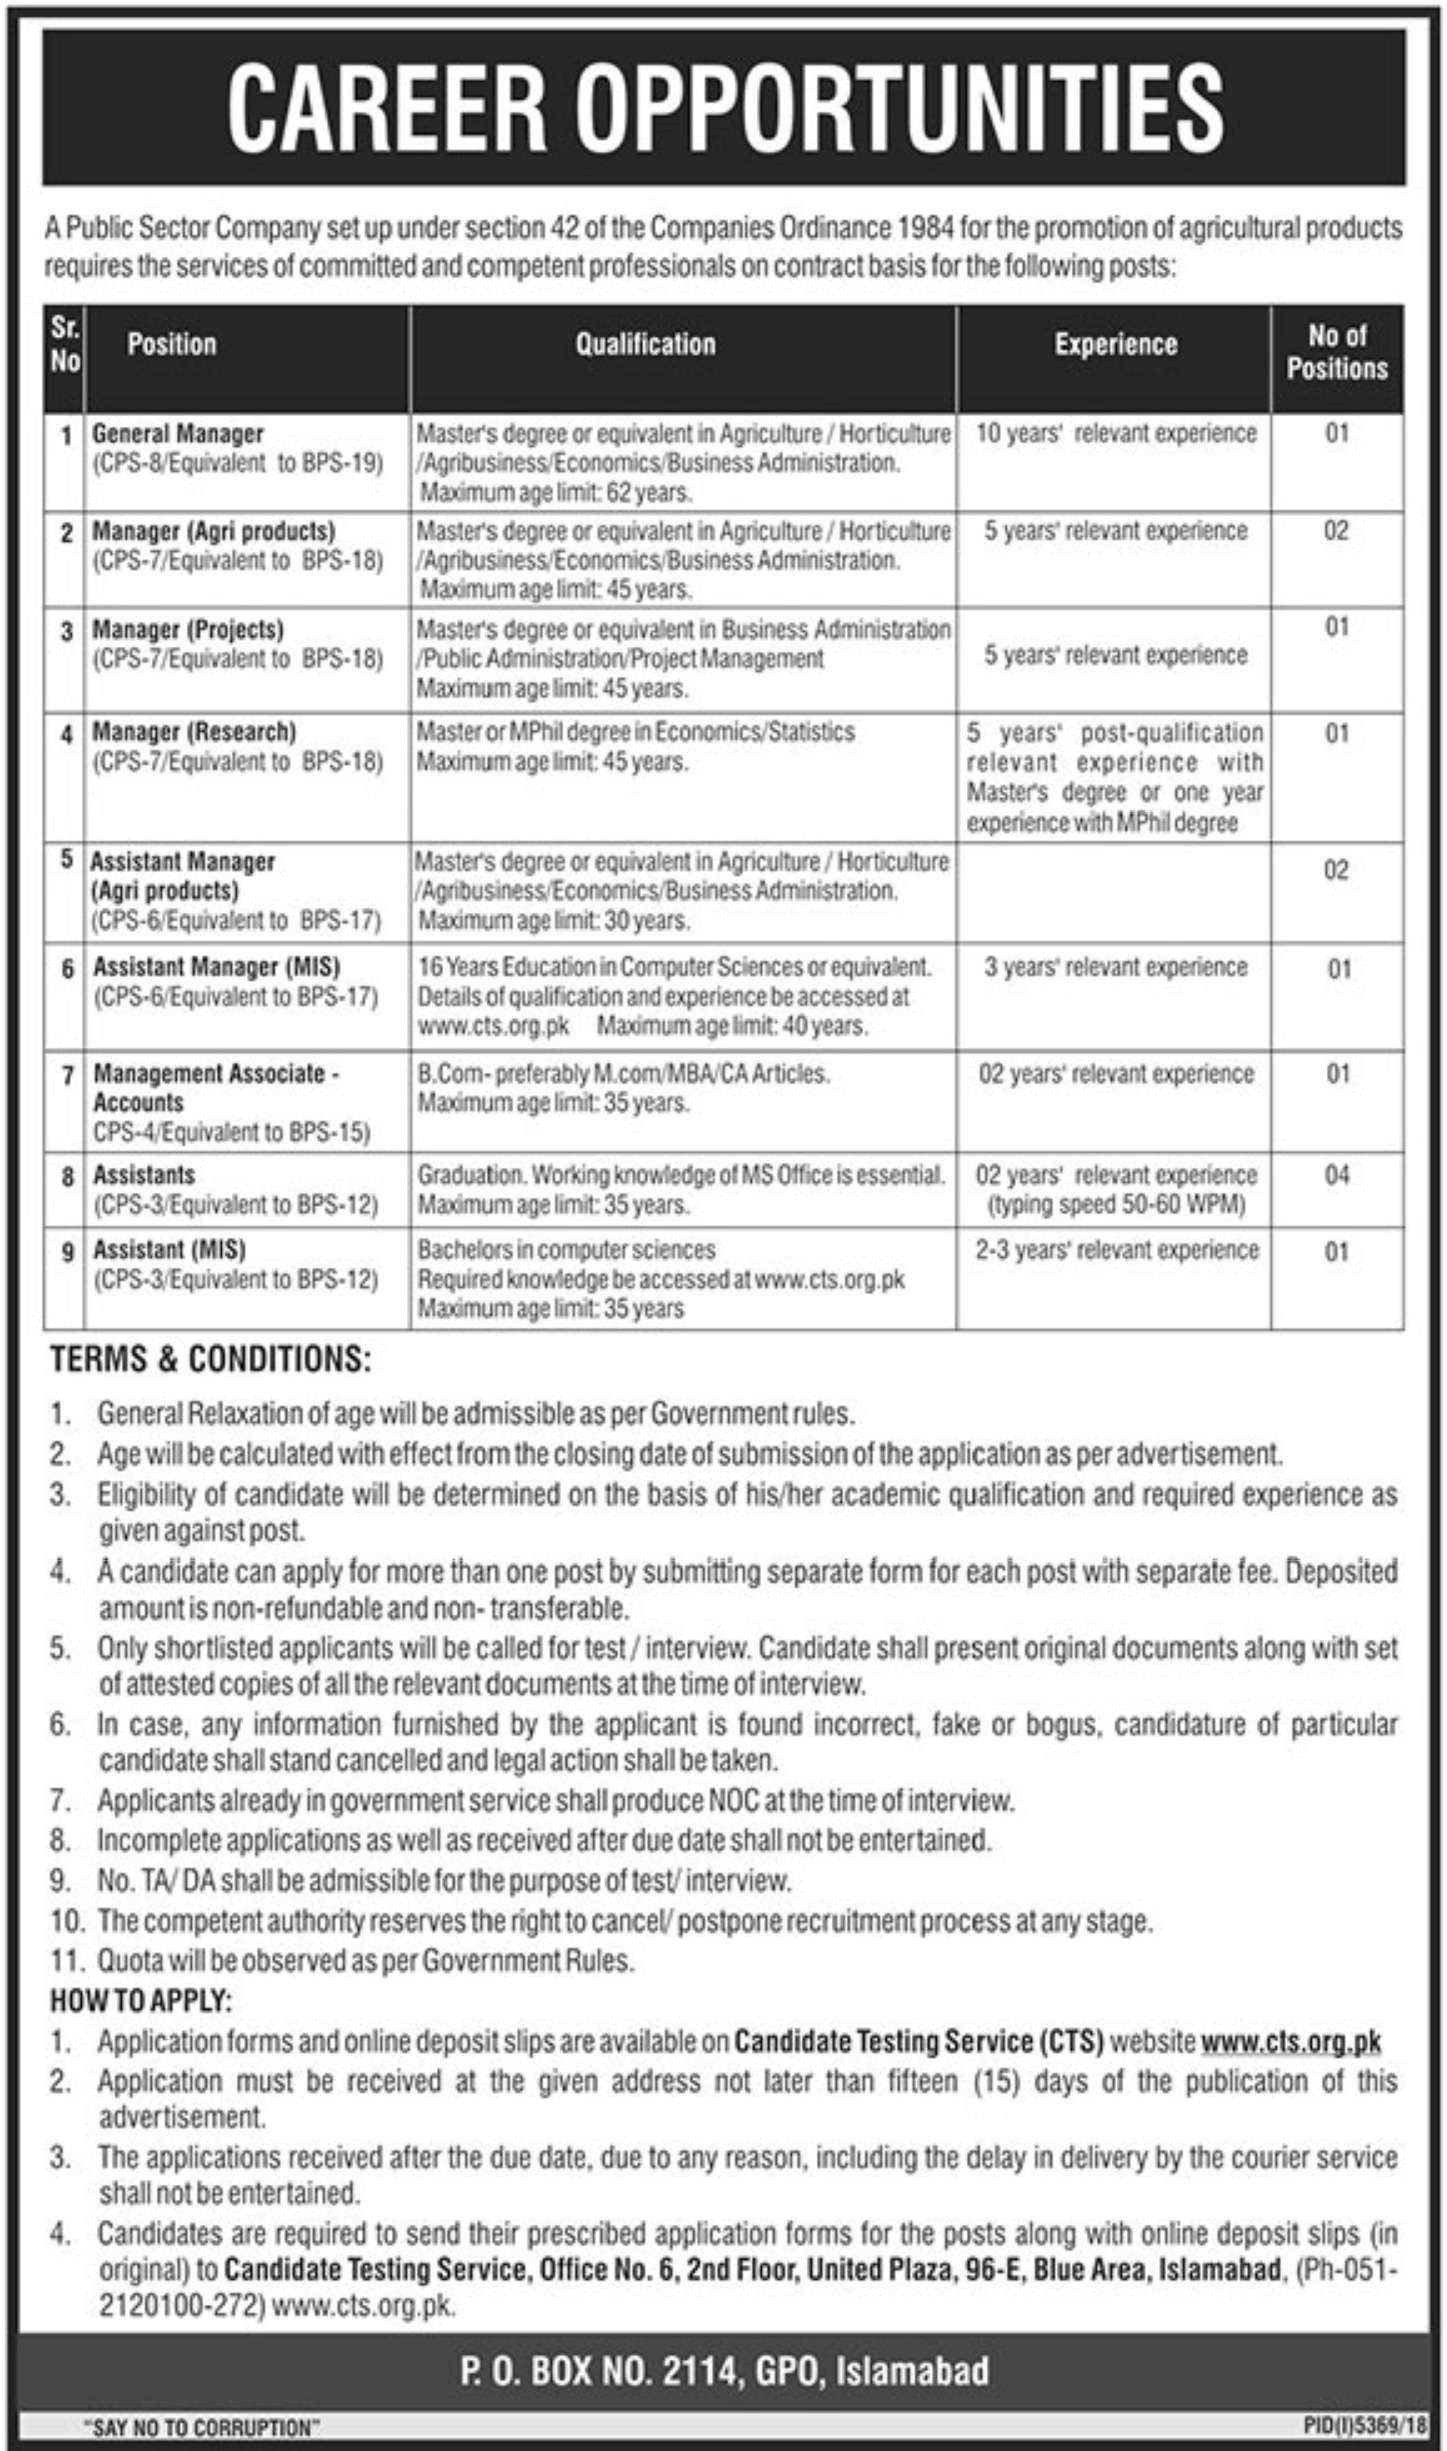 Public Sector Company Jobs 2019 Apply through Candidate Testing Service CTS